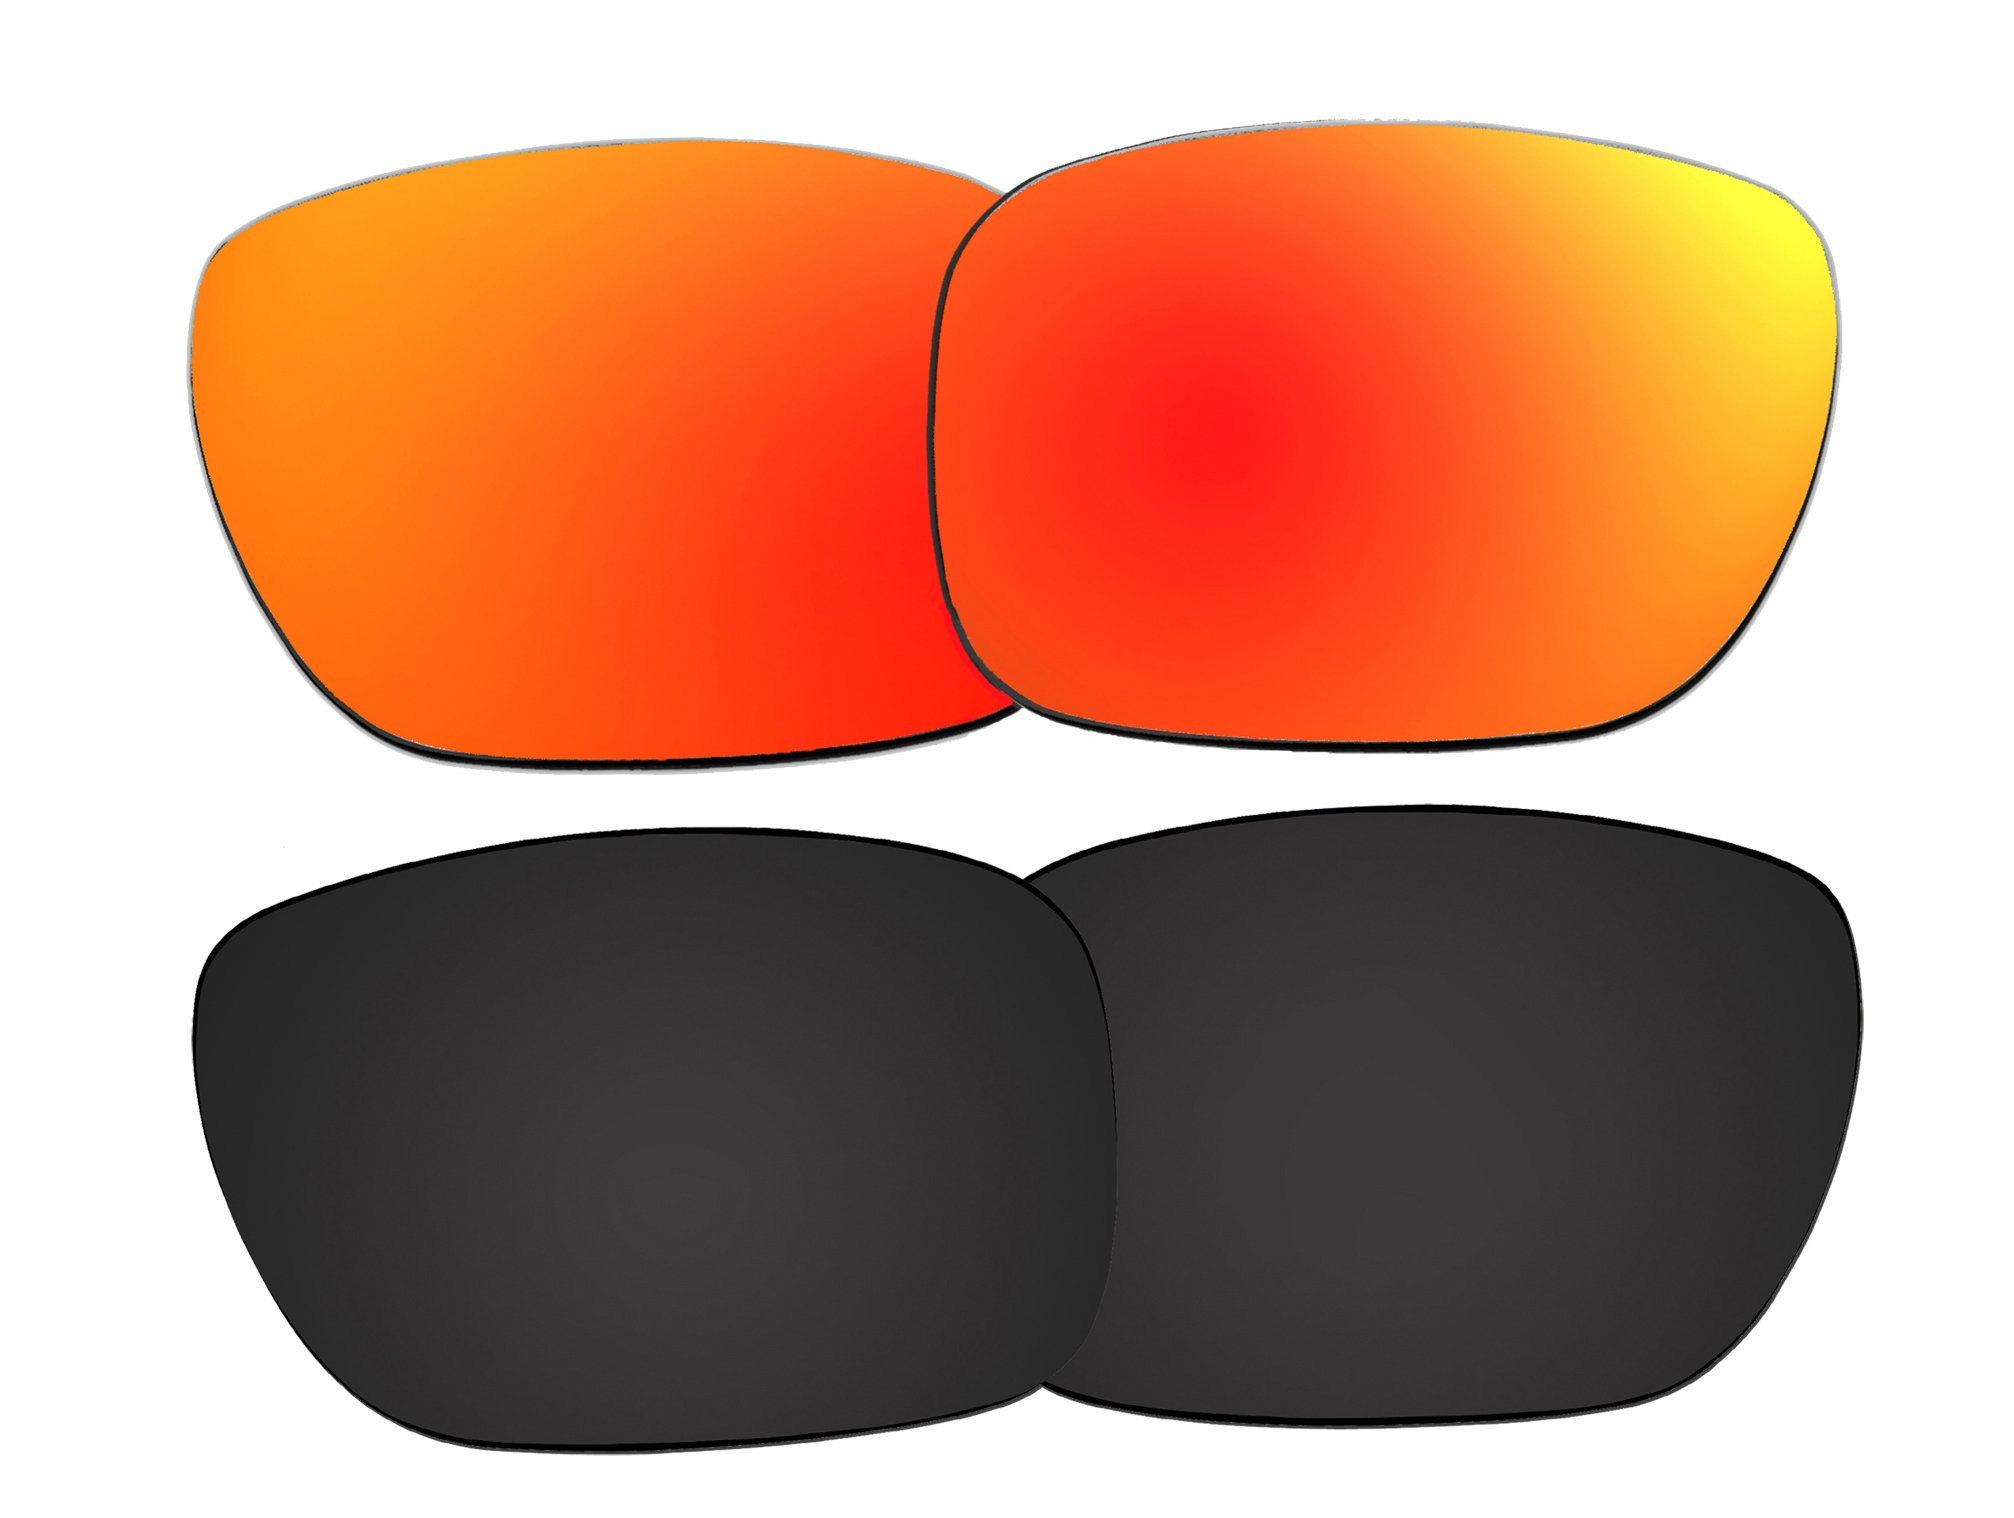 2 Pairs Polarized Replacement Sunglasses Lenses for Oakley Holbrook with UV Protection(Black and Fire Red Mirror)